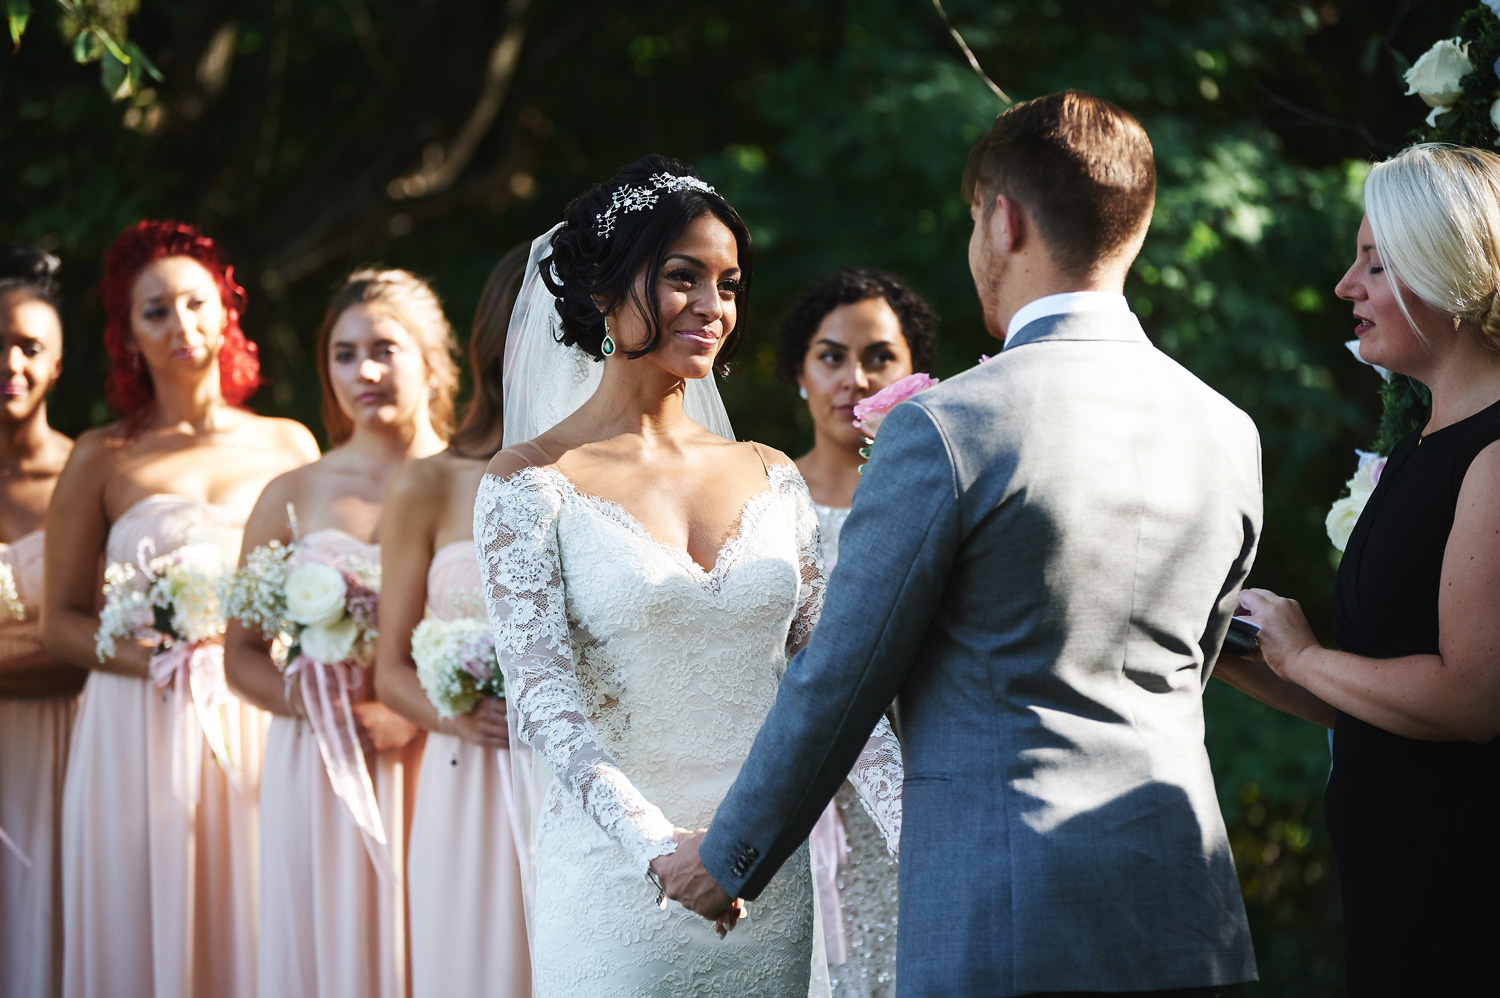 bride-and-groom-reading-their-vows-to-eachother-in-an-outdoor-ceremony.jpg